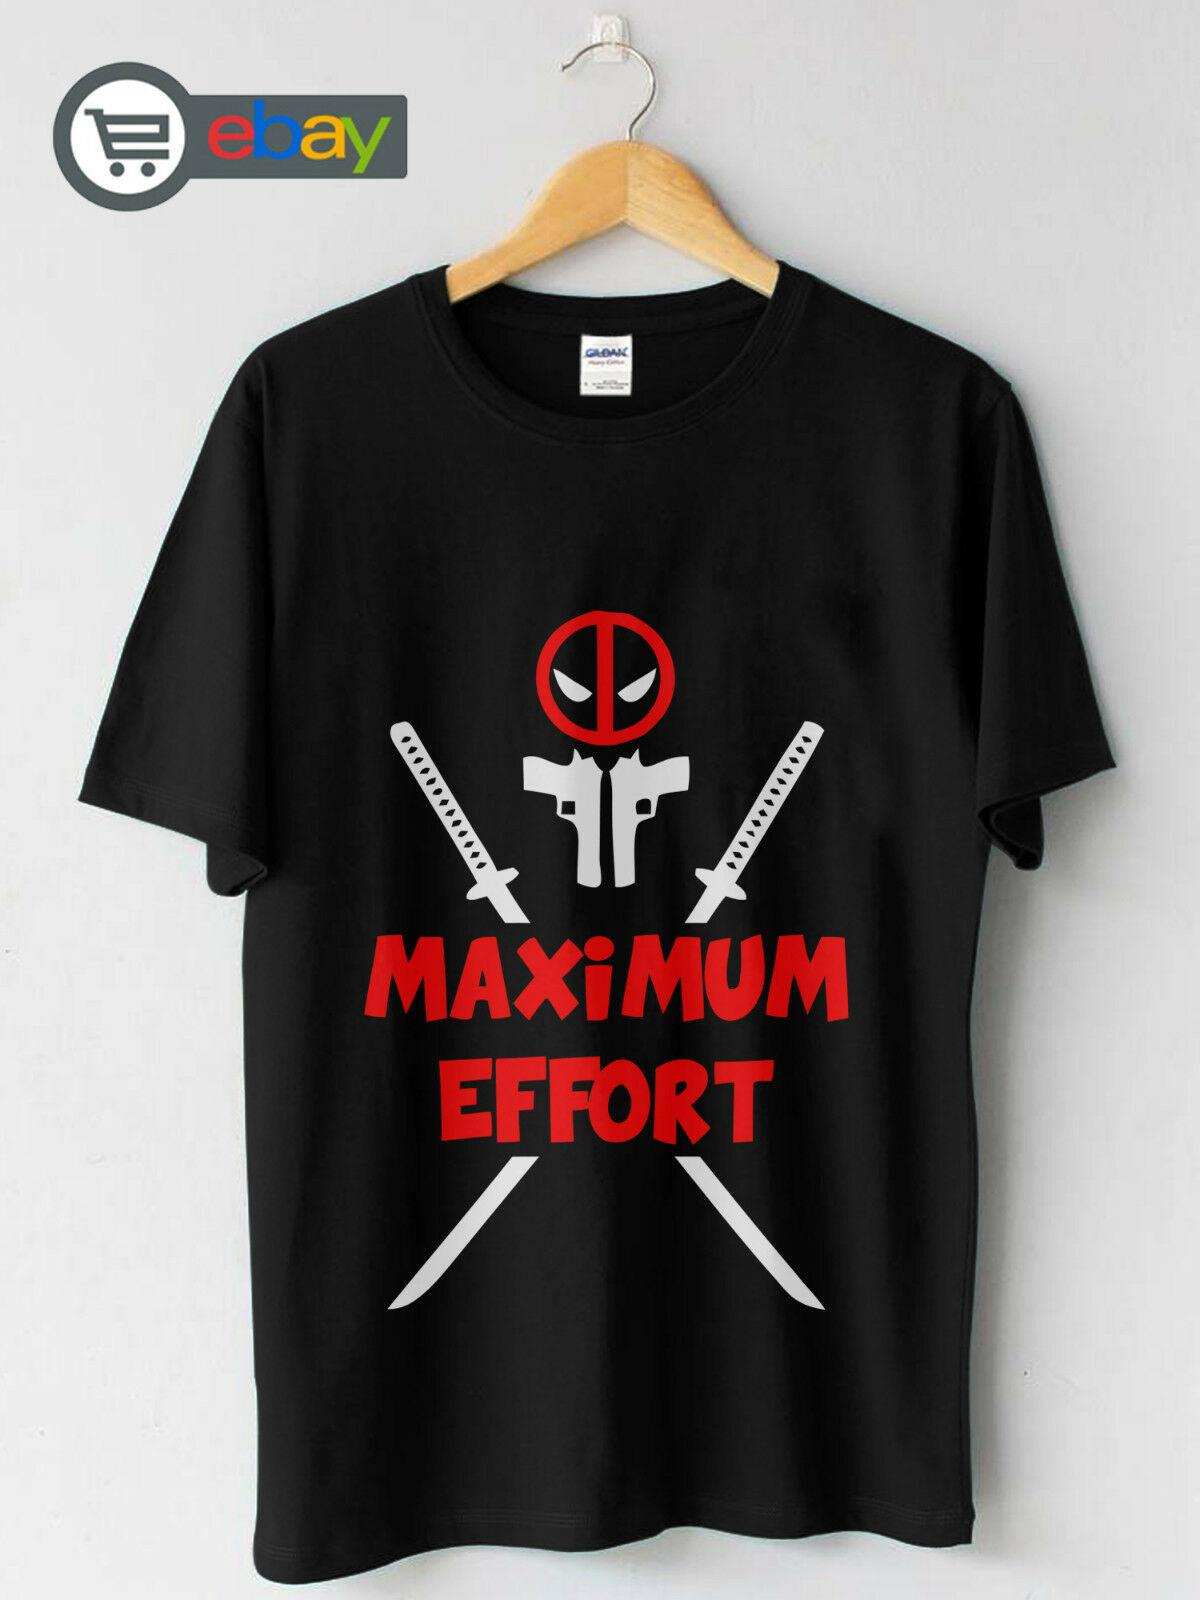 4875c463 Get New Deadpool Maximum Effort Custom Men'S T Shirt S 2XLFunny Unisex  Casual Tshirt Top T Shirts Best Best Funny Shirts From Tshirtdoctor,  $12.96| DHgate.